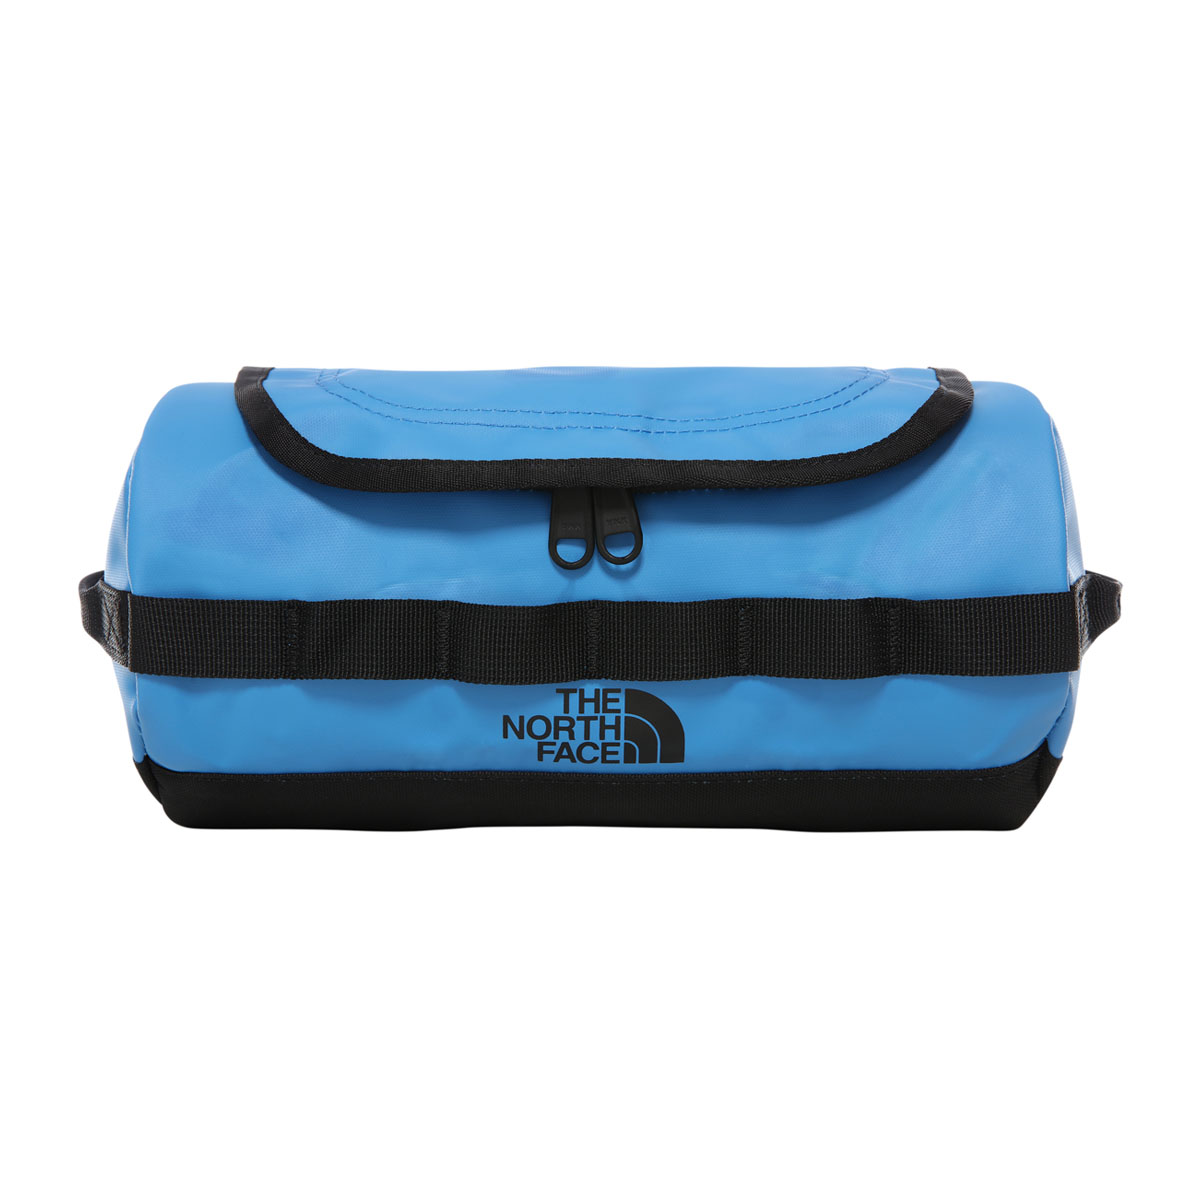 The North Face BC TRAVEL CANISTER- S